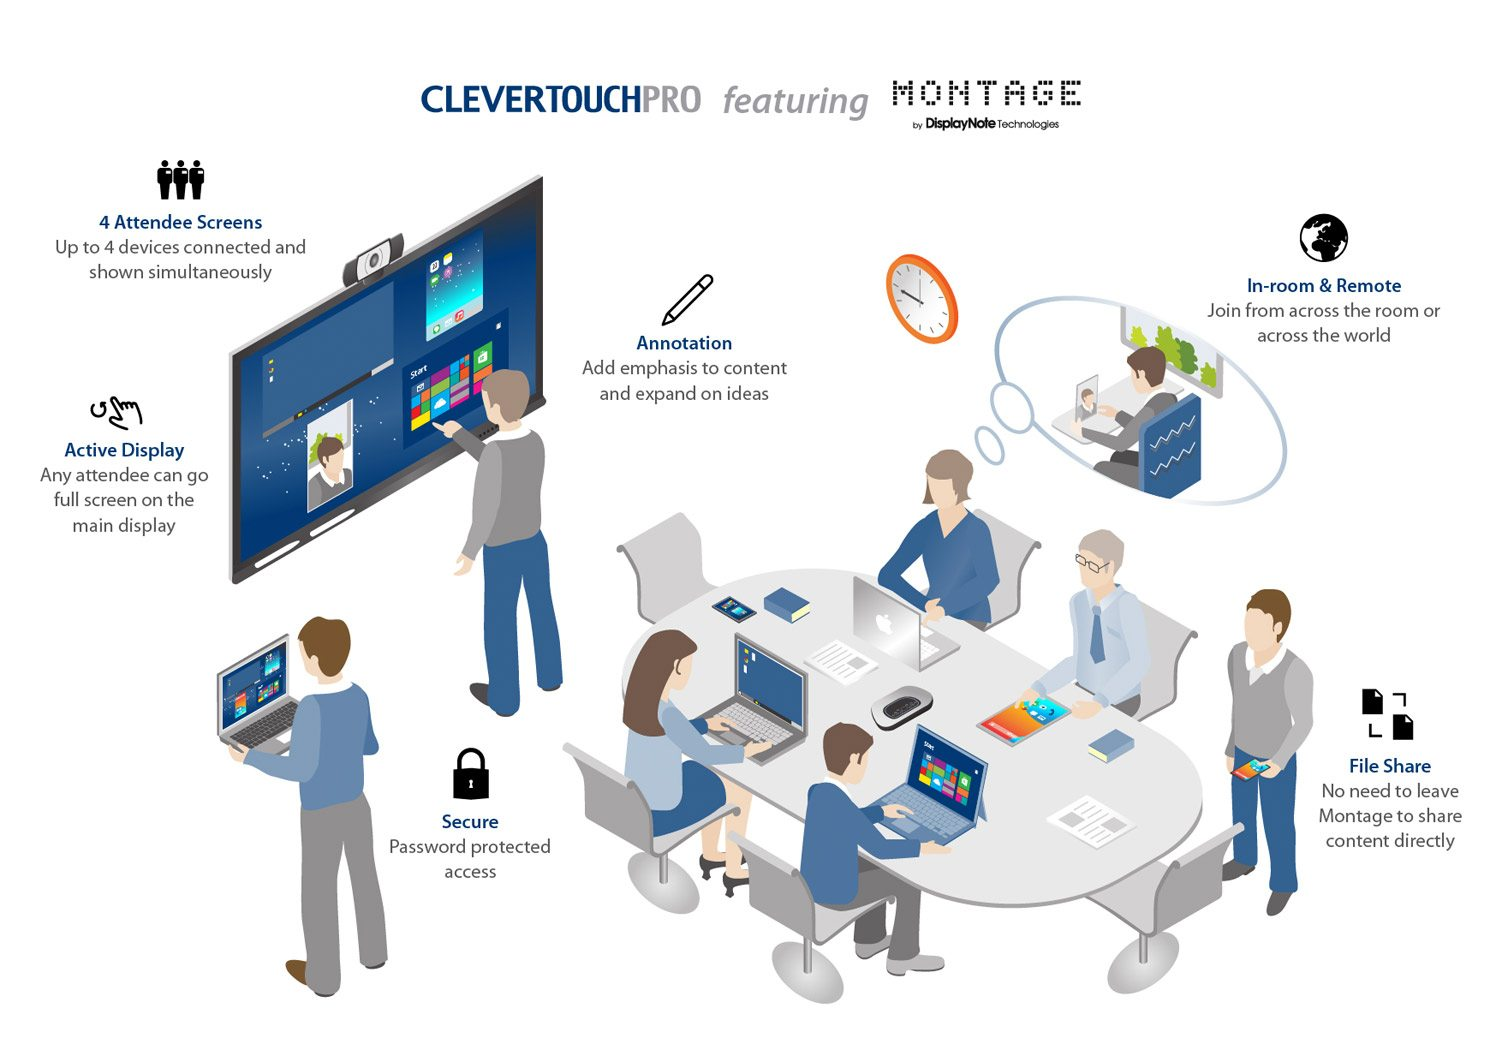 Clevertouch for Business - ClevertouchPro Featuring Montage